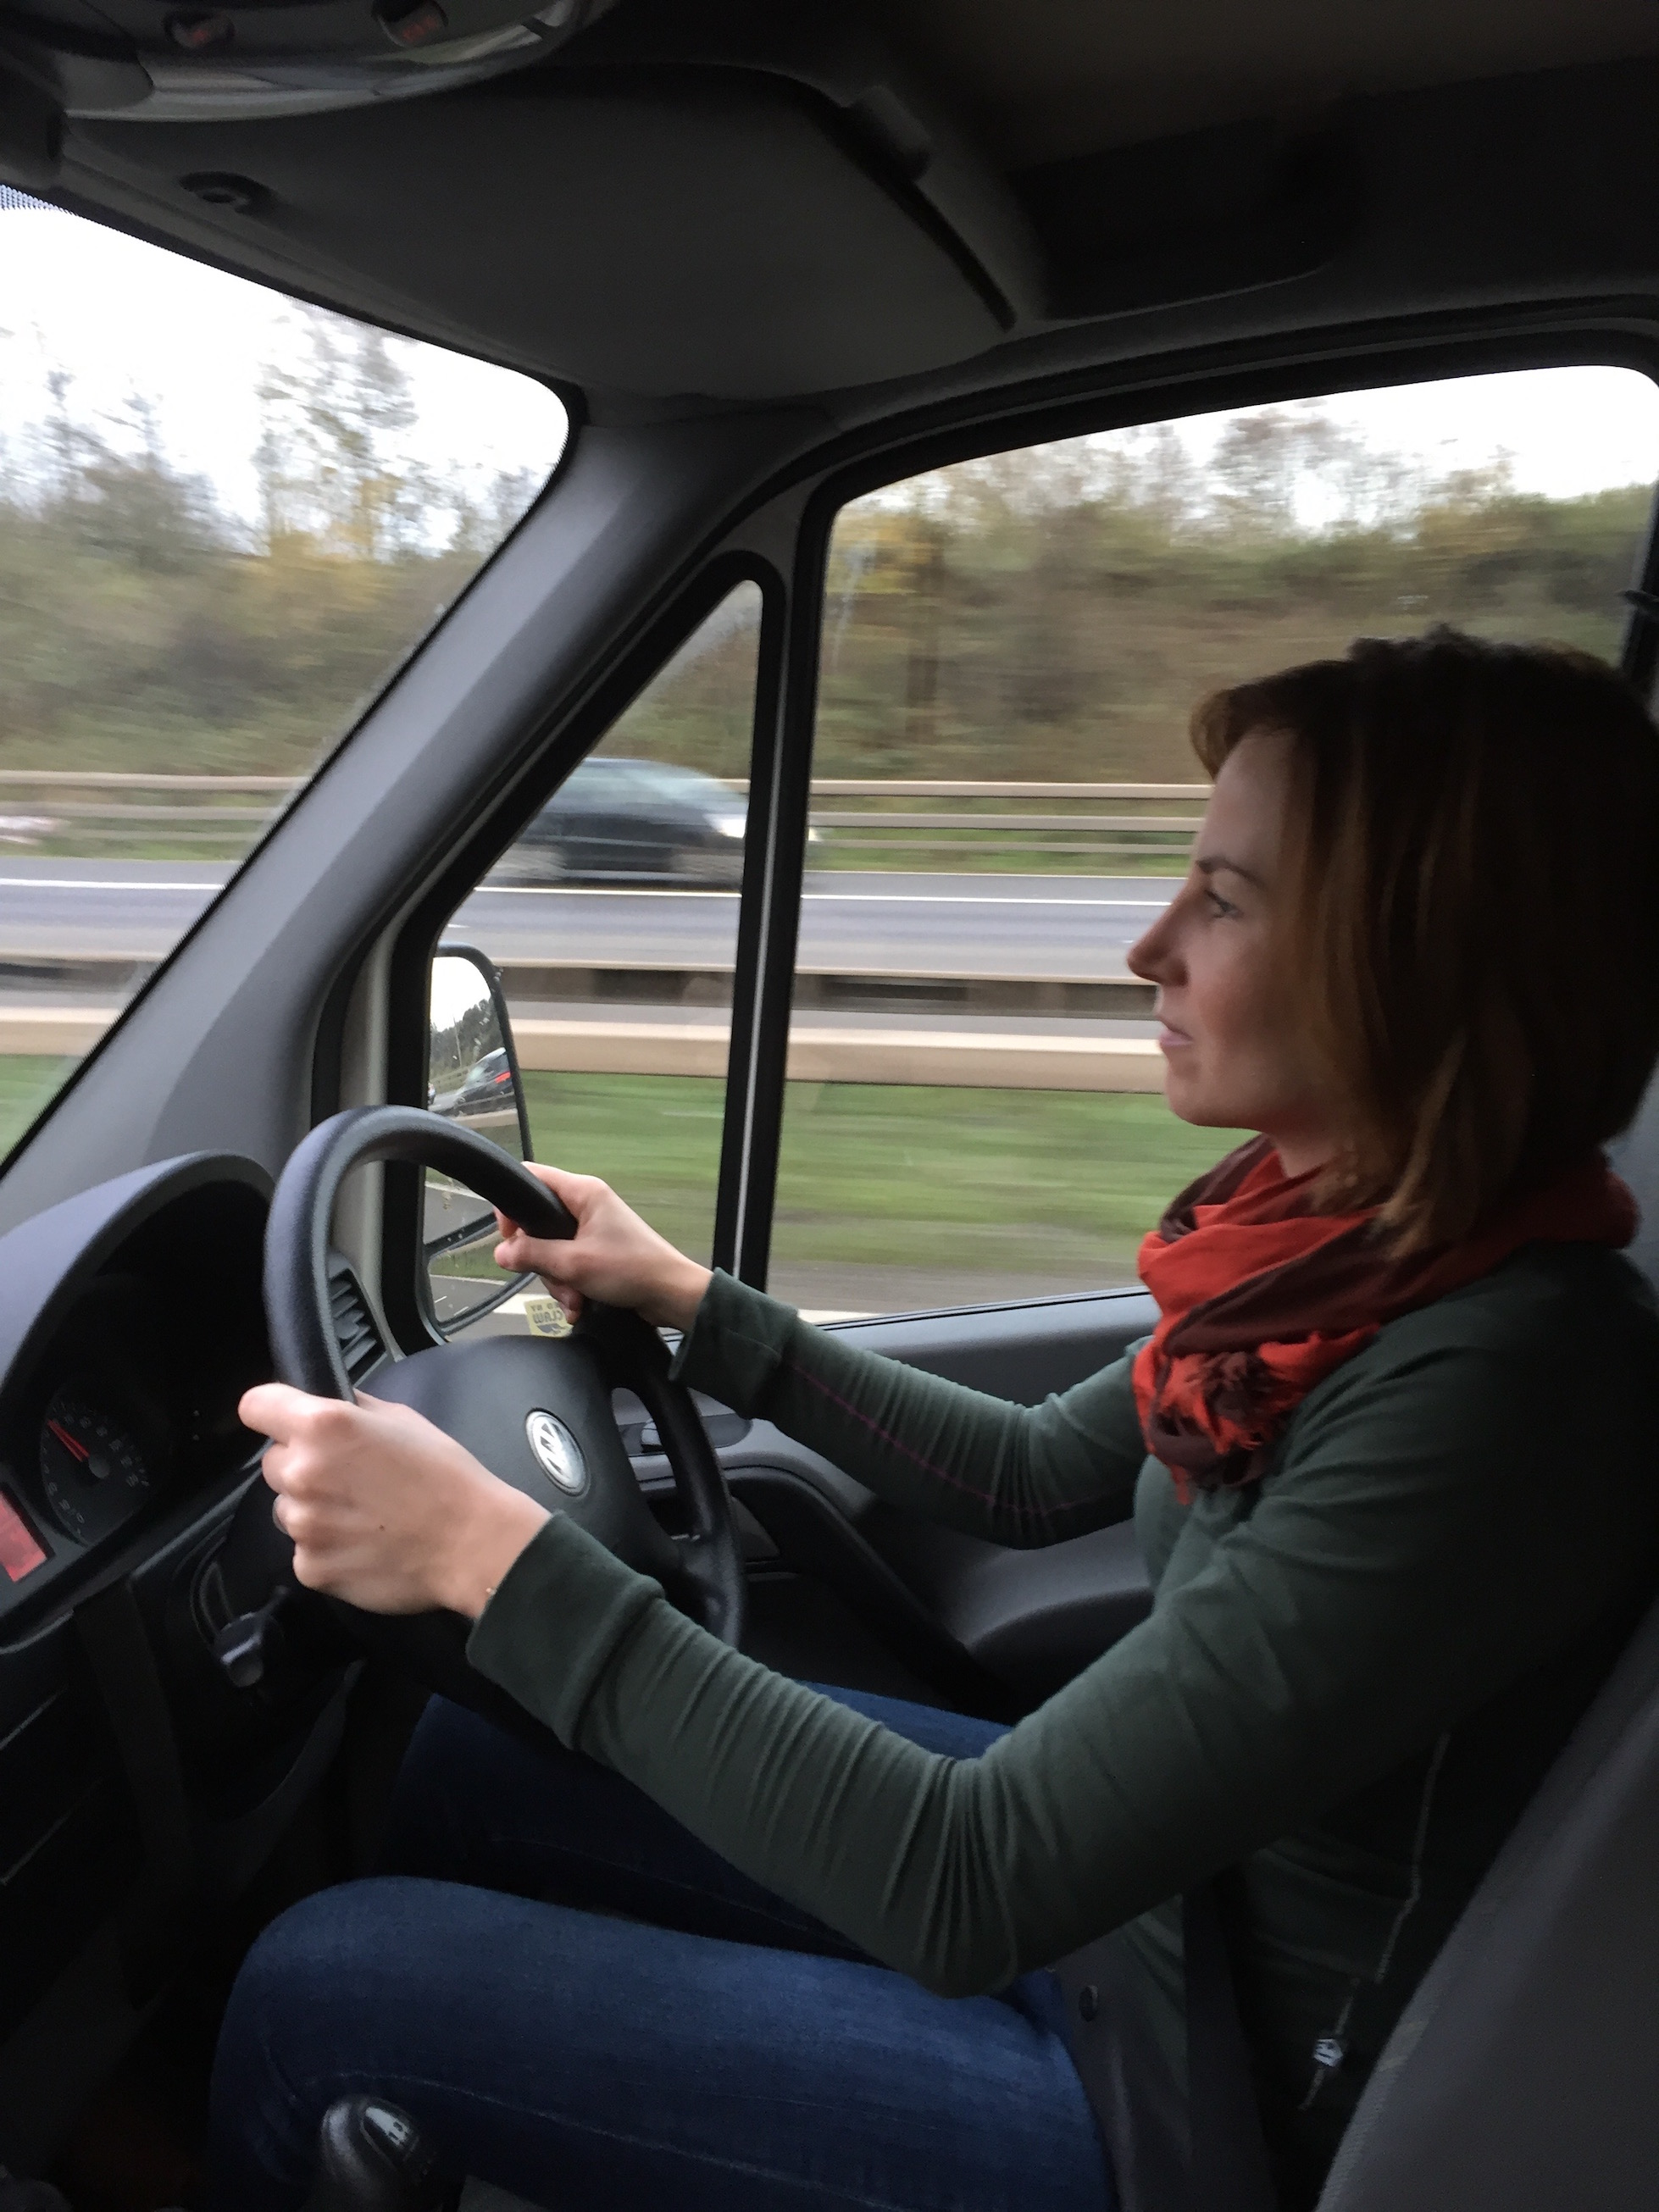 The wife driving the van